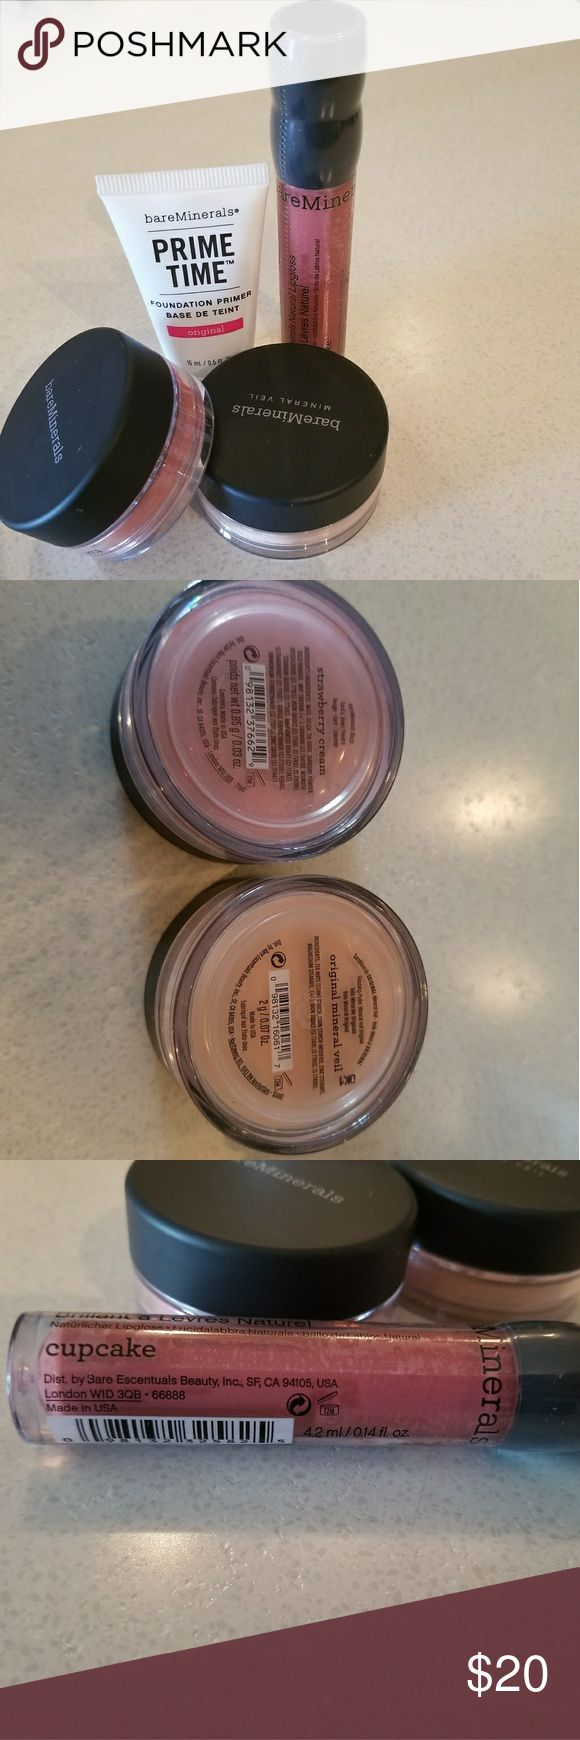 Bare Minerals Bundle Bundle includes 1 full size gloss in cupcake, delux sample of Prime Time foundation primer and .07 oz of Mineral Veil and .03 oz blush in Strawberry Cream. All unused products. bareMinerals Makeup